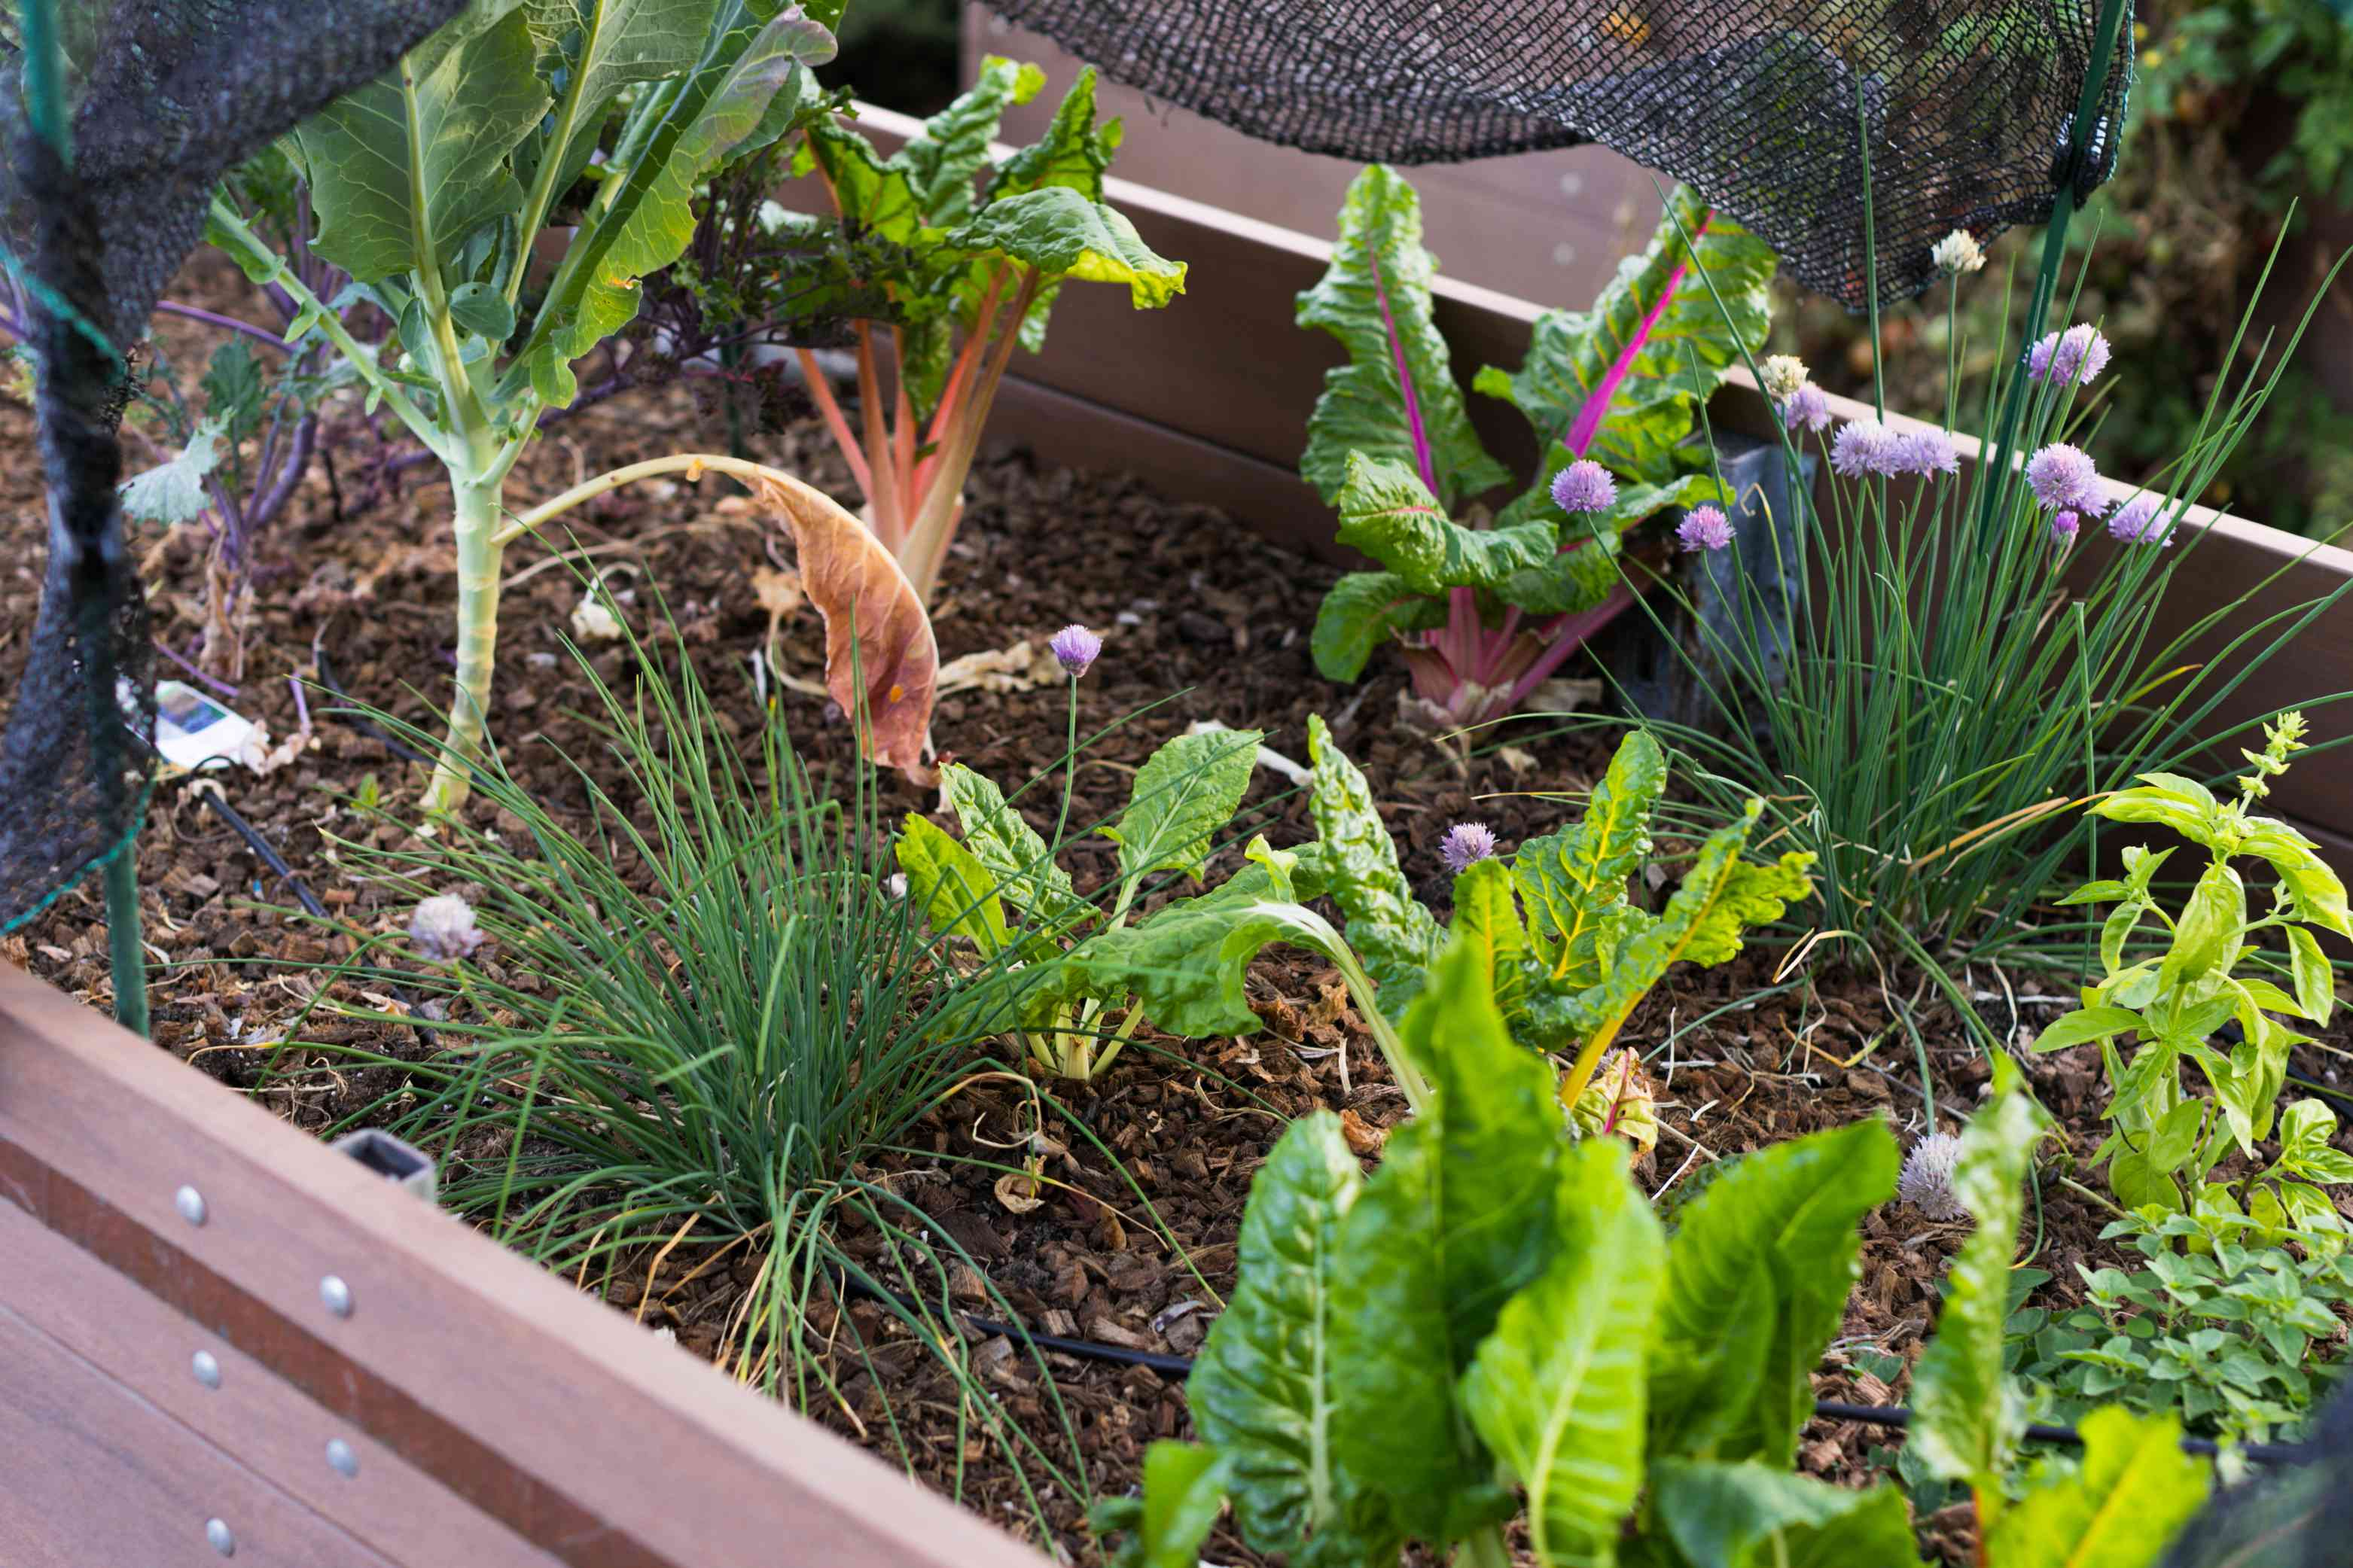 Eclectic vegetable garden planting designed with companion plants